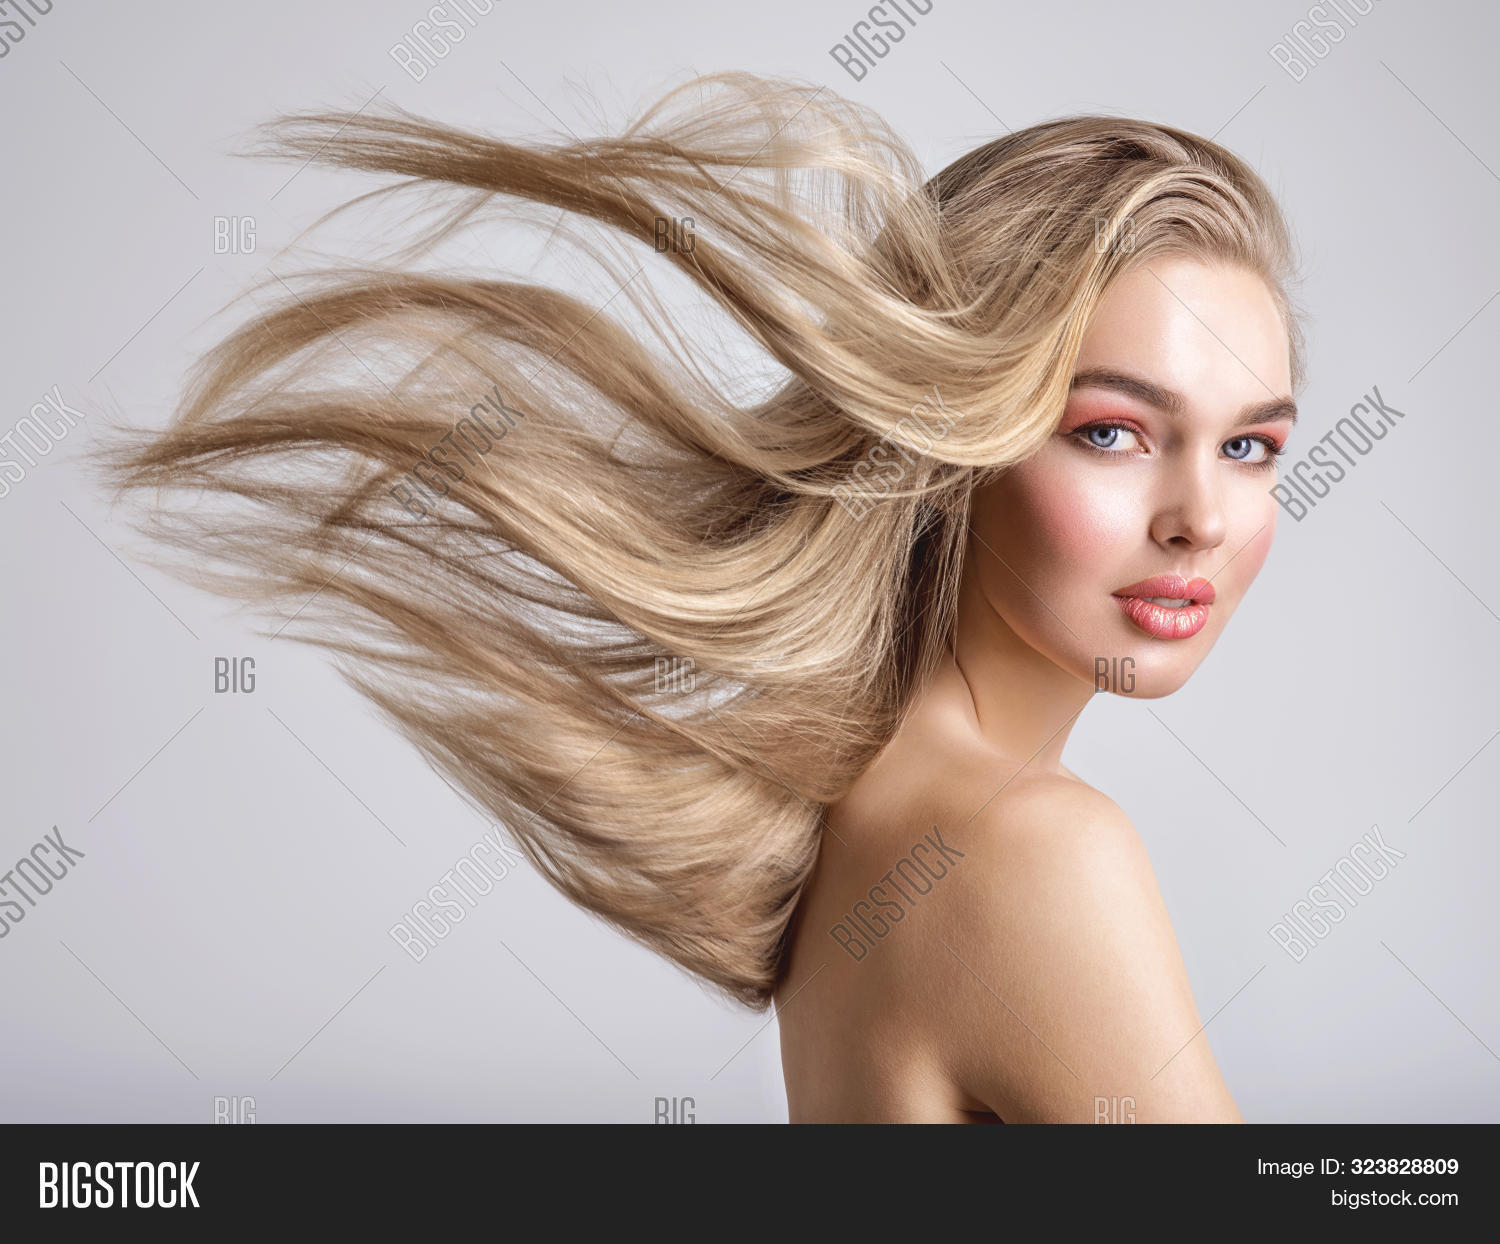 Portrait of a blonde beautiful woman with a long straight light hair. Woman with hair flying in the